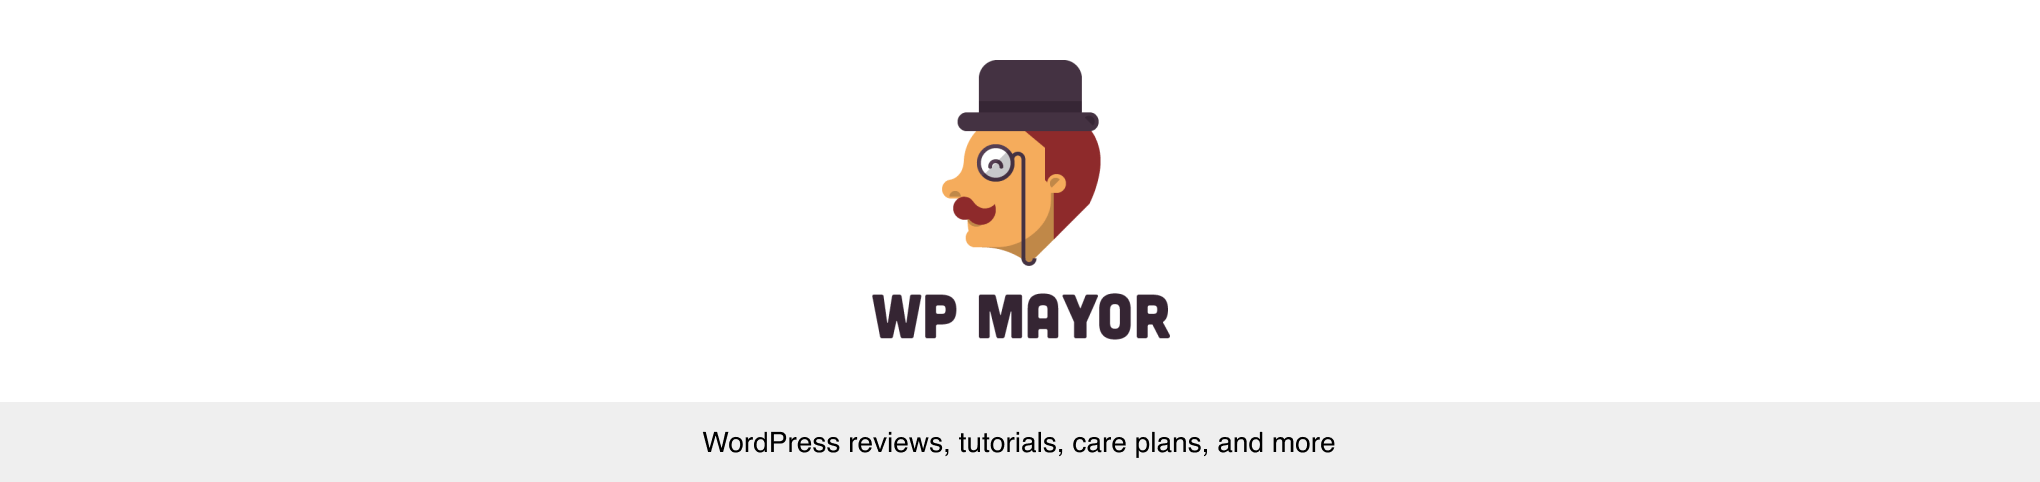 WP Mayor